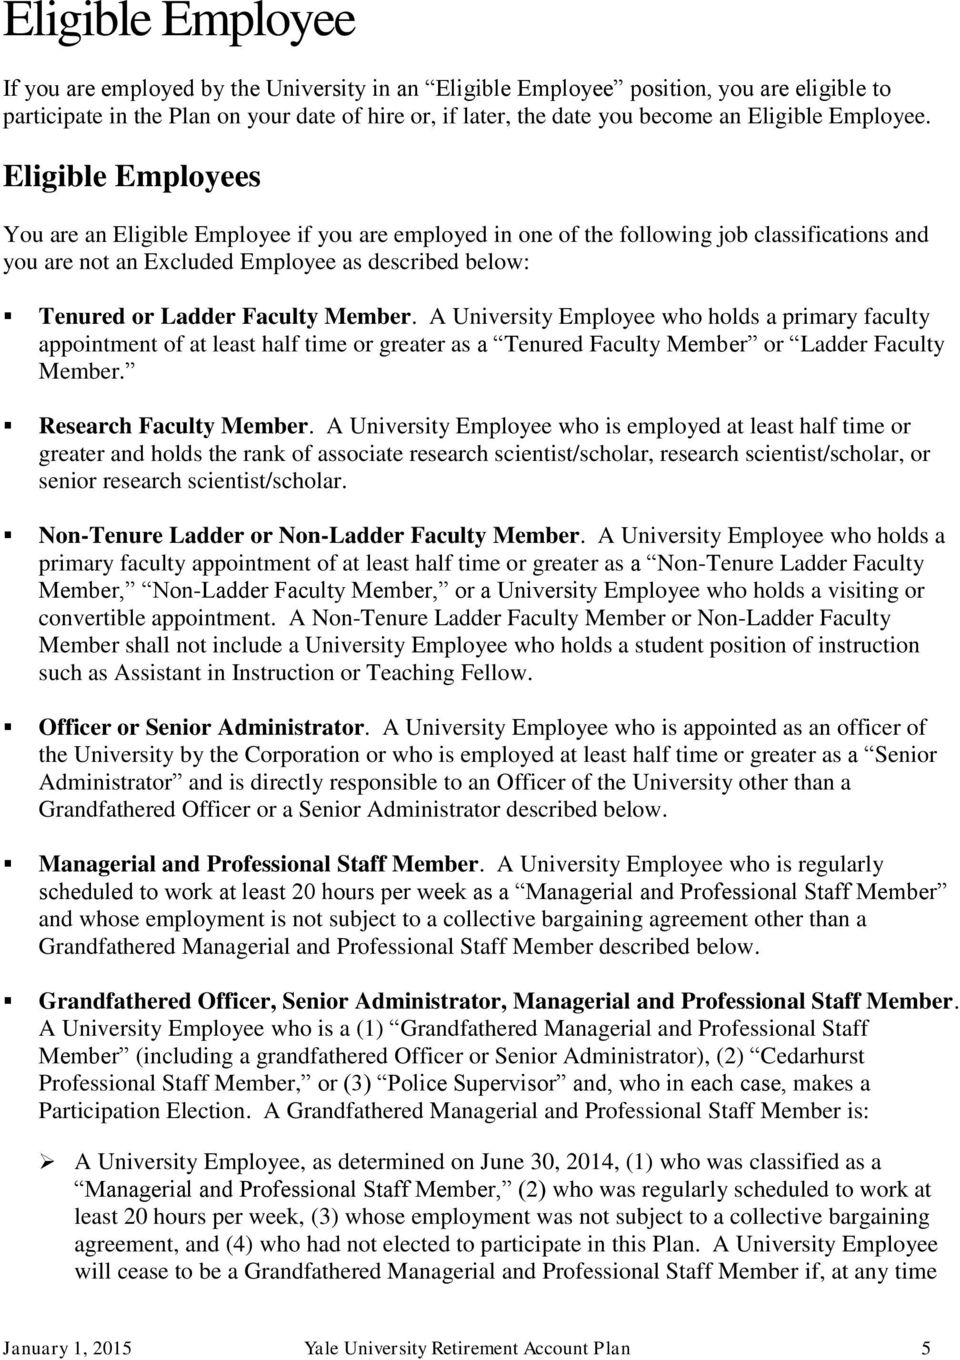 Eligible Employees You are an Eligible Employee if you are employed in one of the following job classifications and you are not an Excluded Employee as described below: Tenured or Ladder Faculty